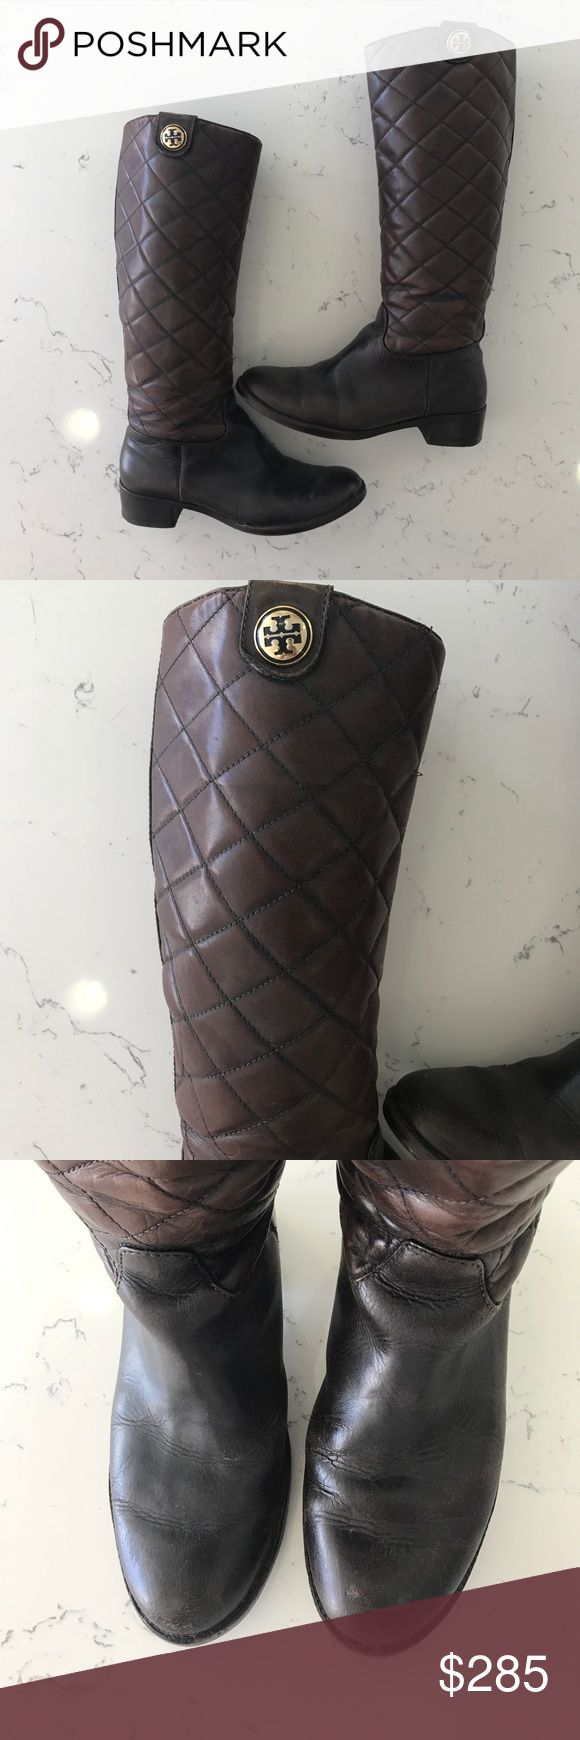 Tory Burch quilted leather boots Gorgeous and soooo comfortable! Recently re-heeled and conditioned beautiful brown leather boots. Some wear and tear but overall in great shape and tons of wear left in them. I moved to California and no longer wear boots in this hot weather! Please note one of the studs is a little loose but not noticeable when wearing. Tory Burch Shoes Winter & Rain Boots